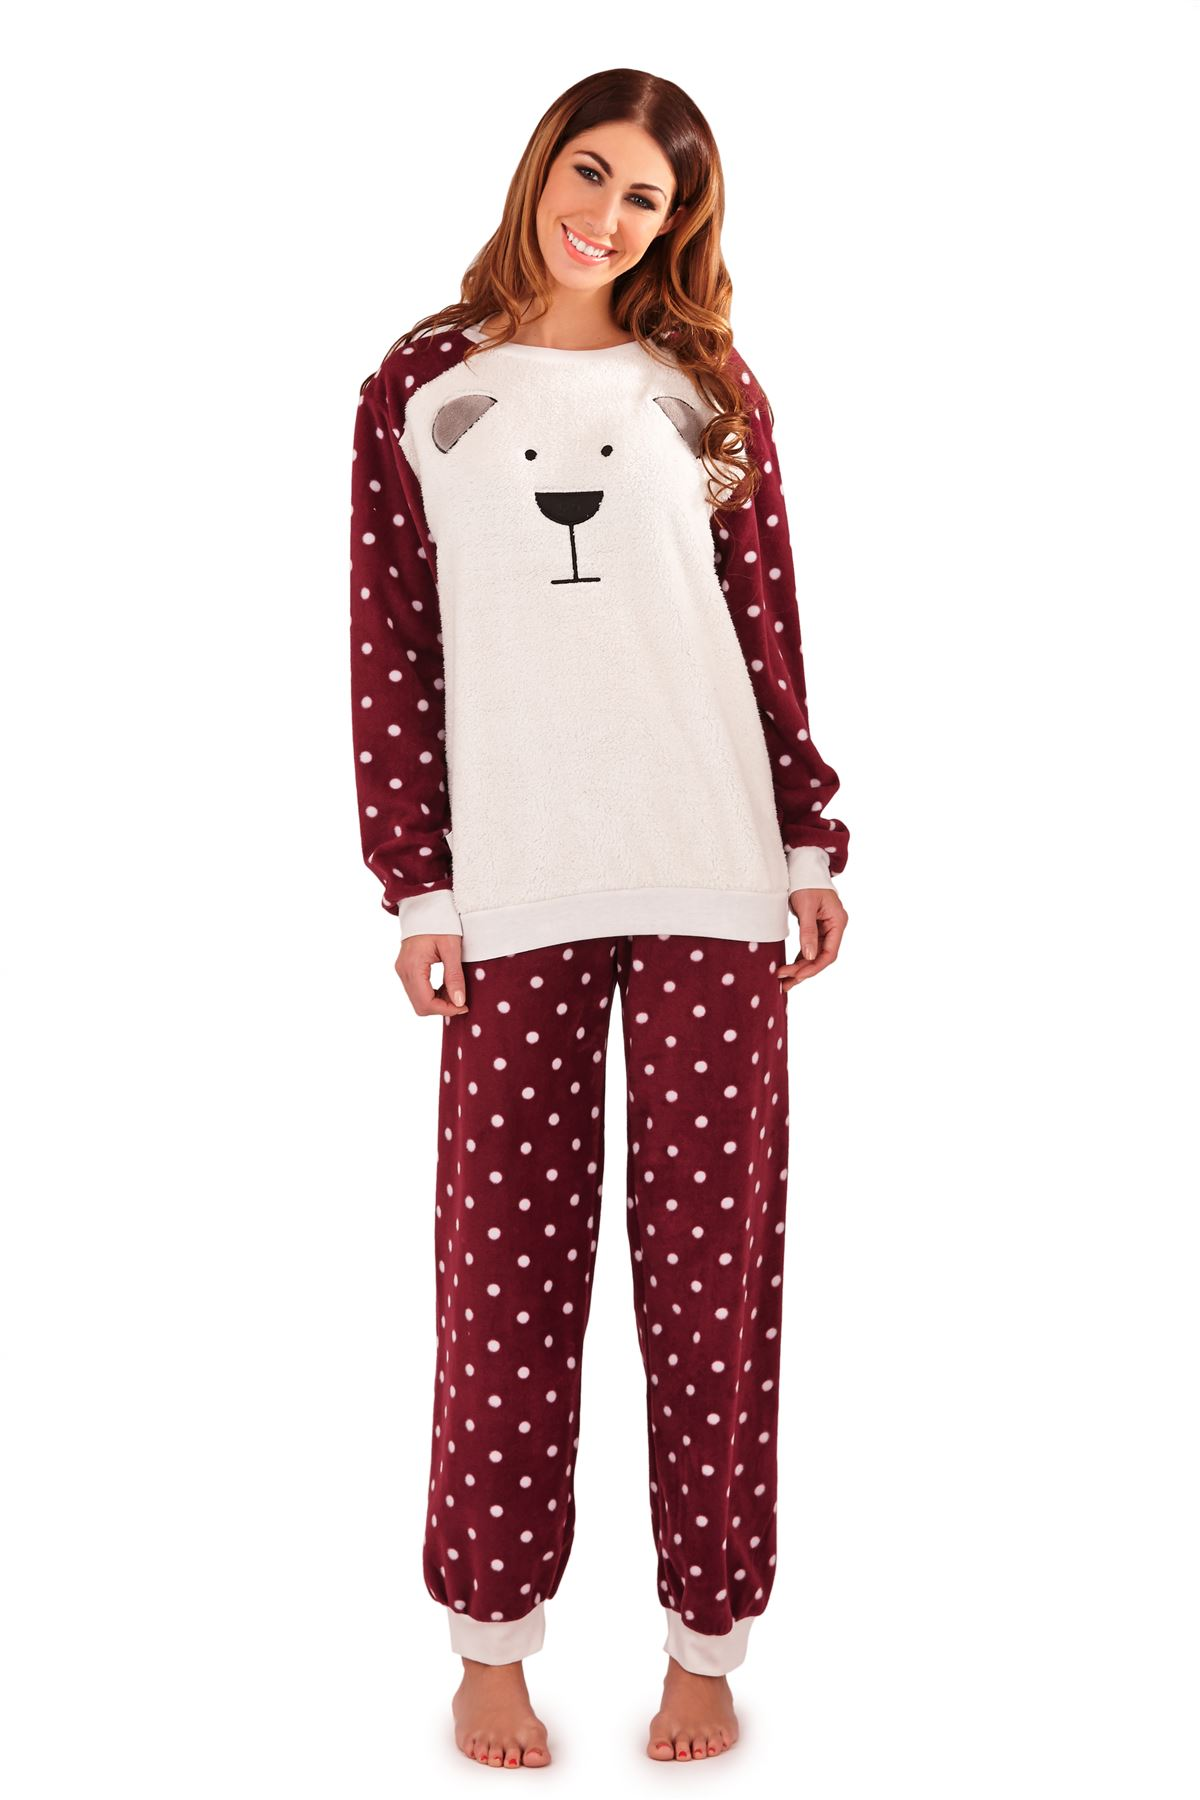 Lingerie Sleepwear | Teen Nightgown | Womens Pjs